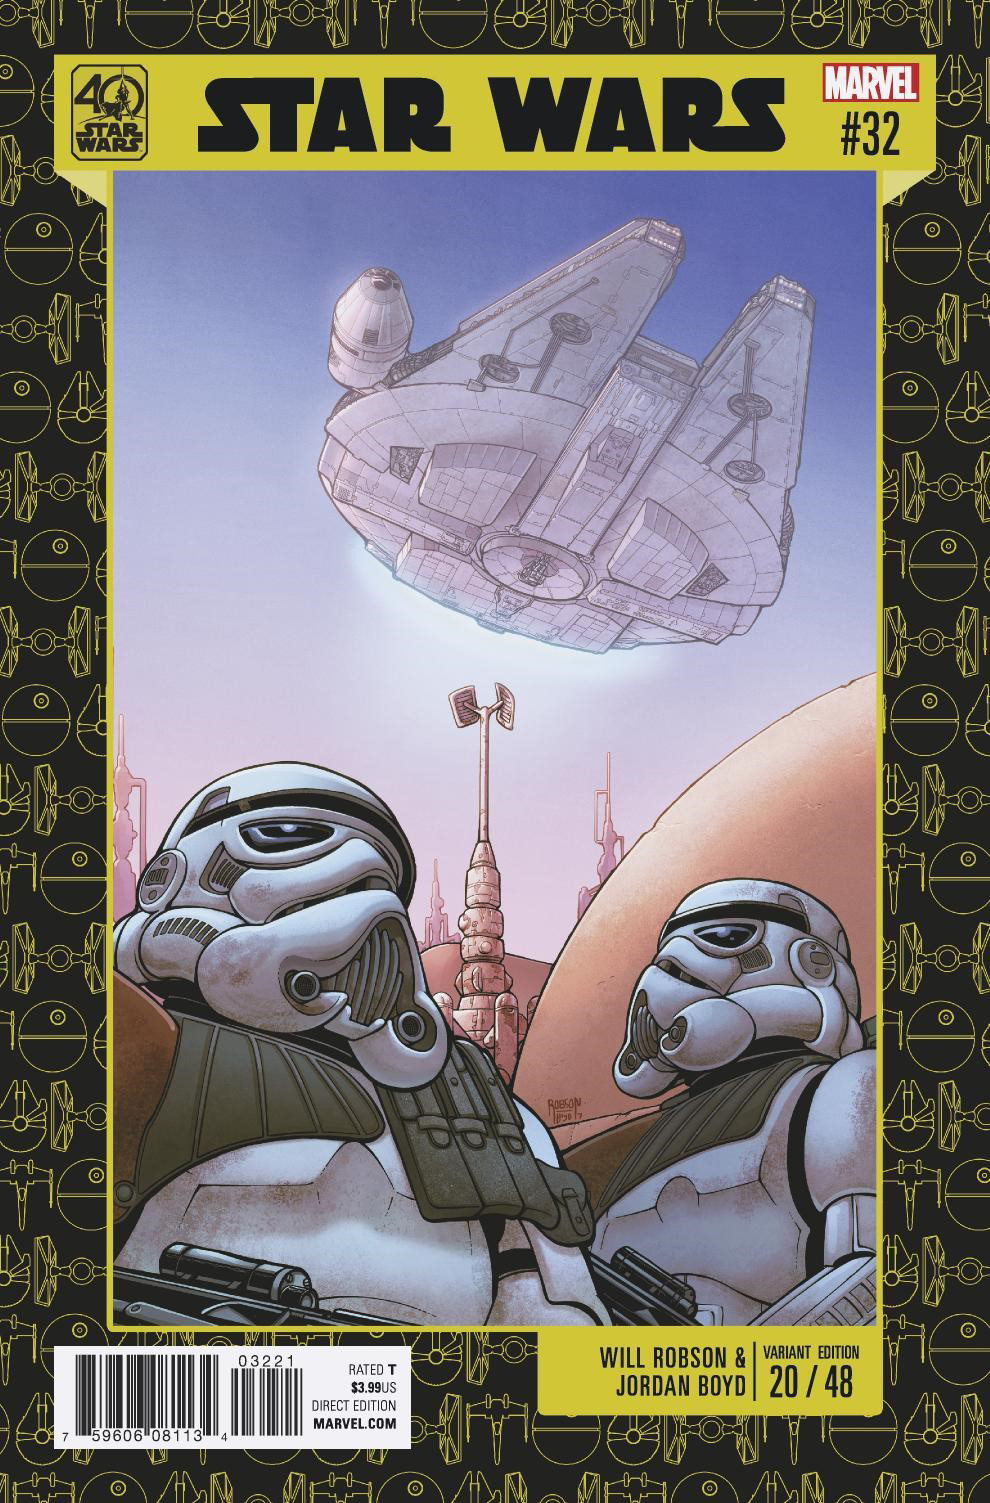 Star Wars #32 (Will Robson Star Wars 40th Anniversary Variant Cover) (14.06.2017)